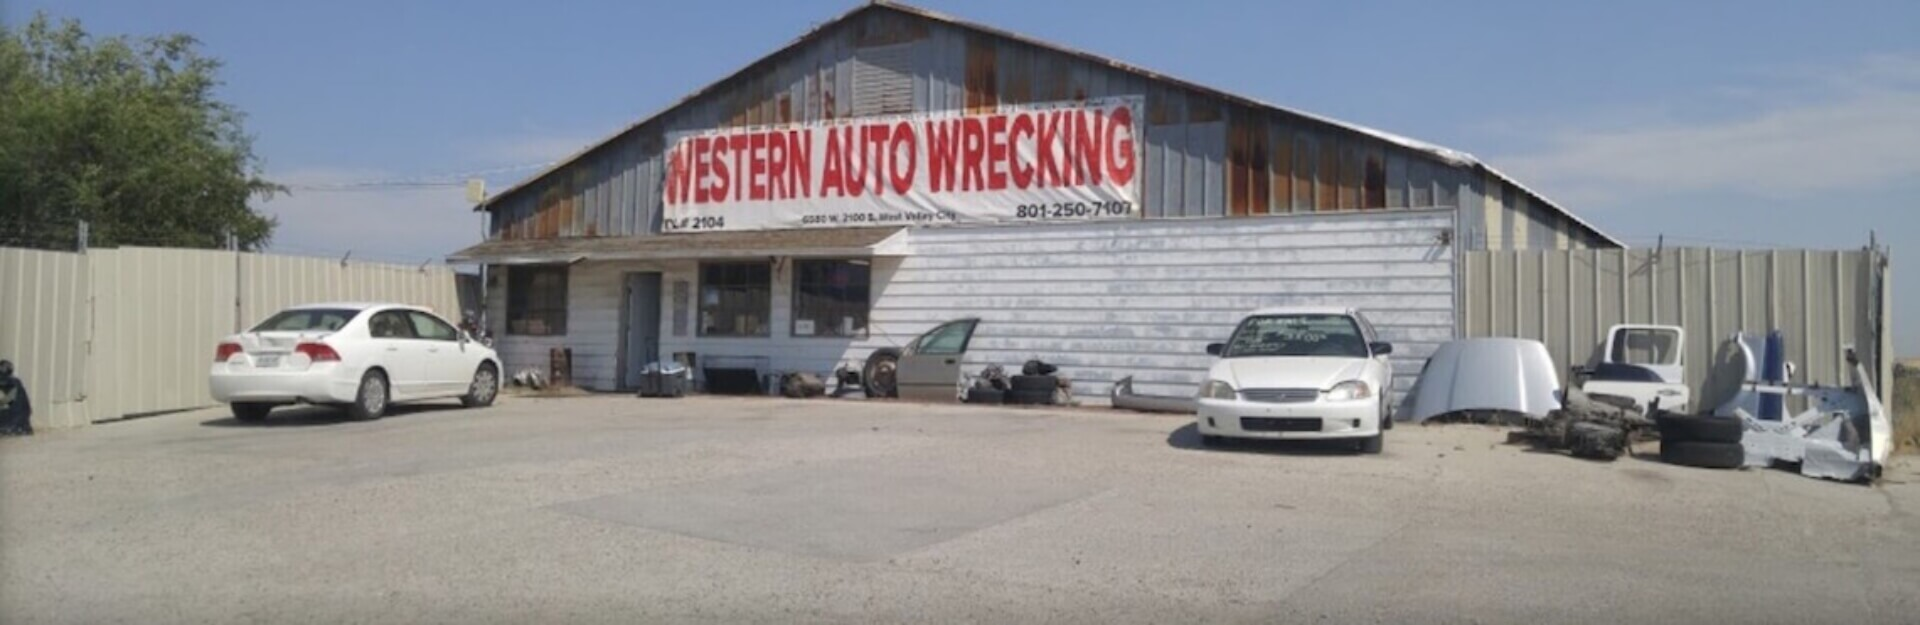 Western Auto Wrecking Used Car Parts Utah